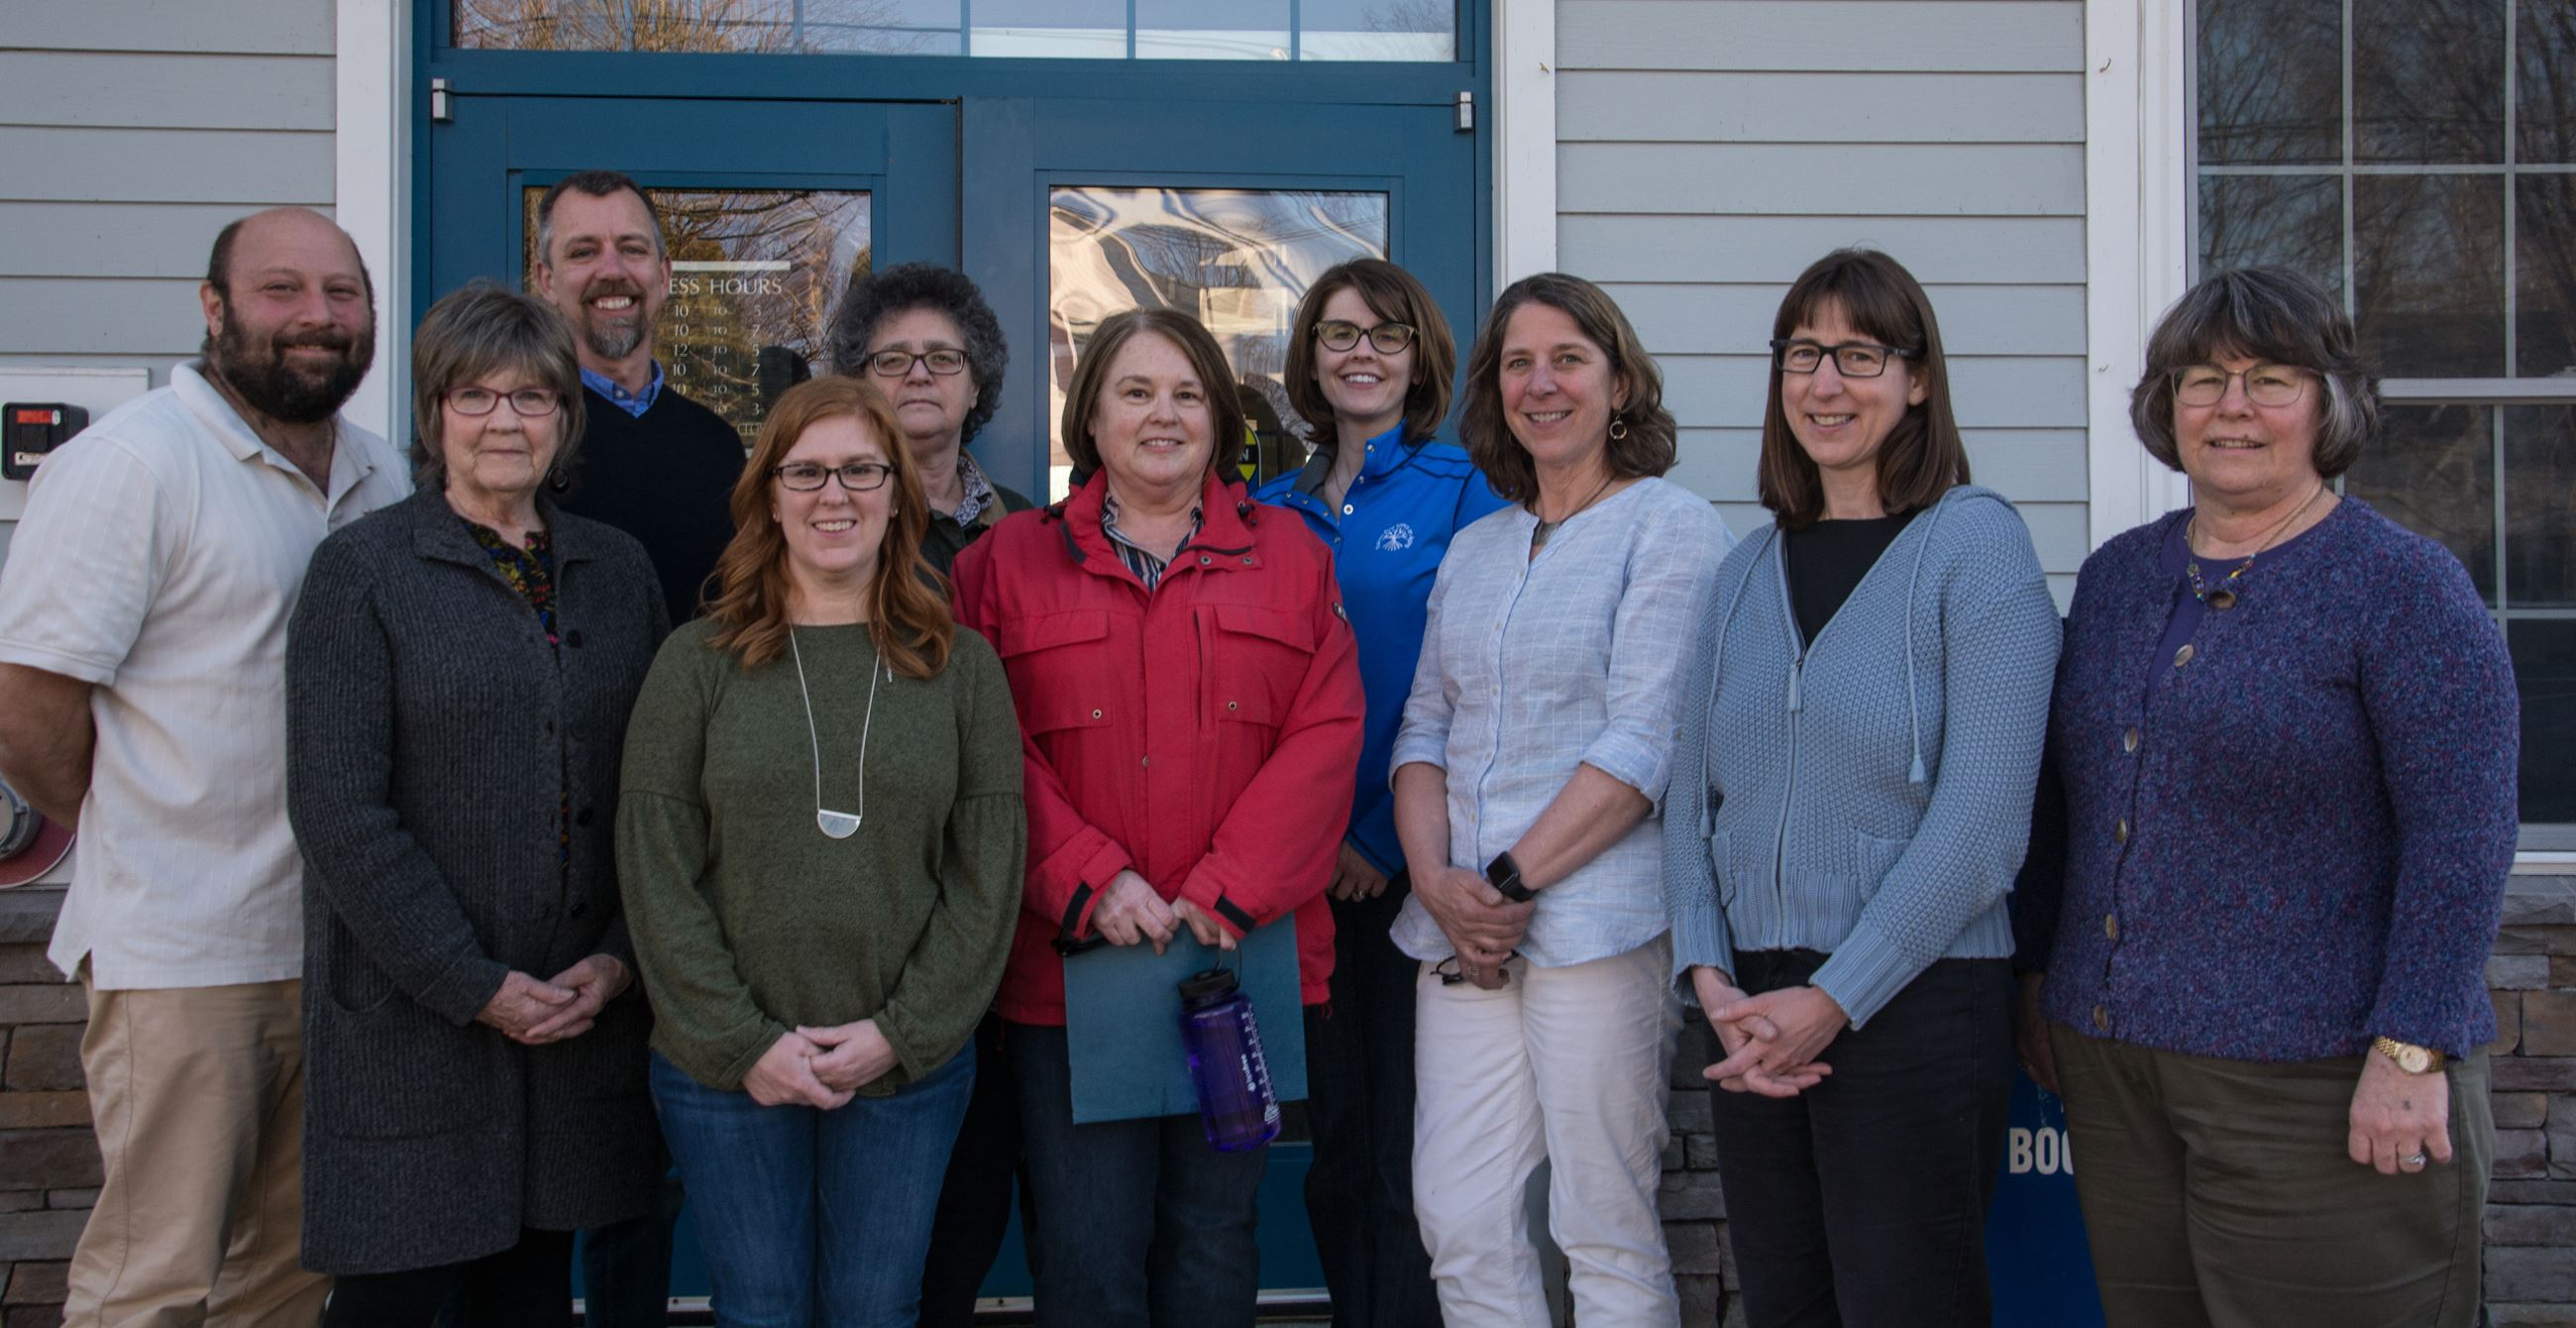 2019 group shot of Orono Public Library Foundation members